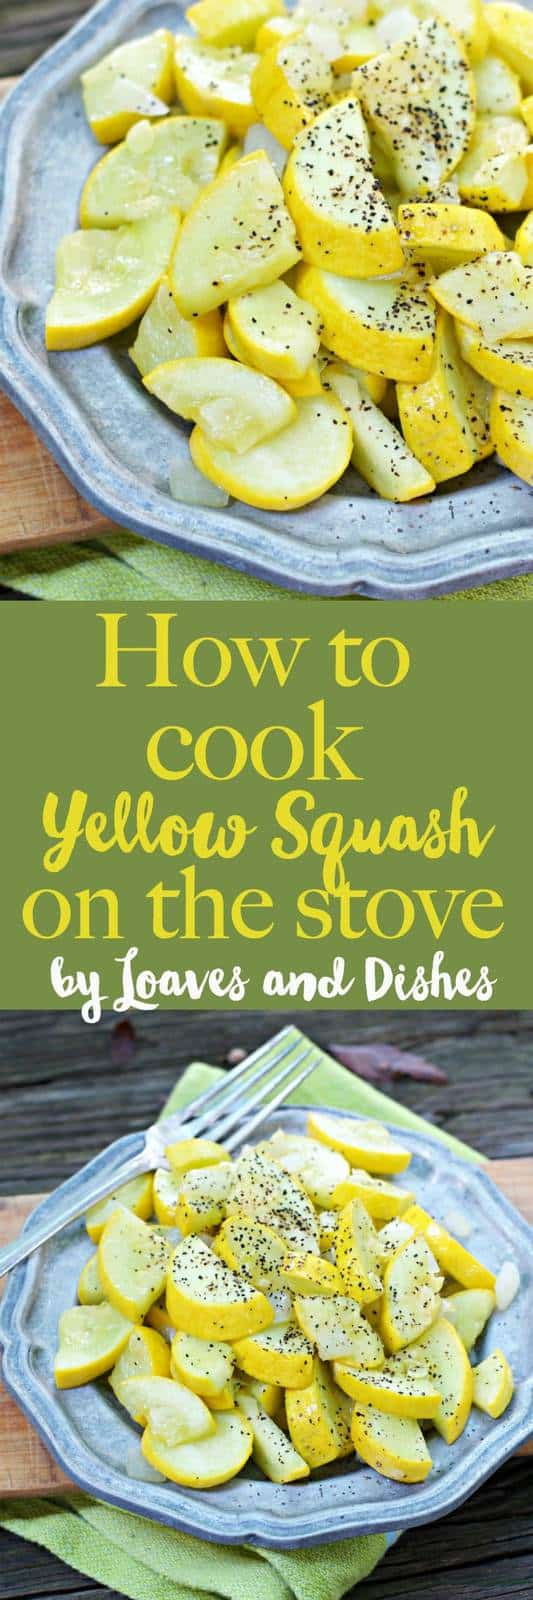 Yellow squash sauteed on the stove with onions and garlic is the BEST way to enjoy garden squash. Simple and easy recipe you can use olive oil if you like